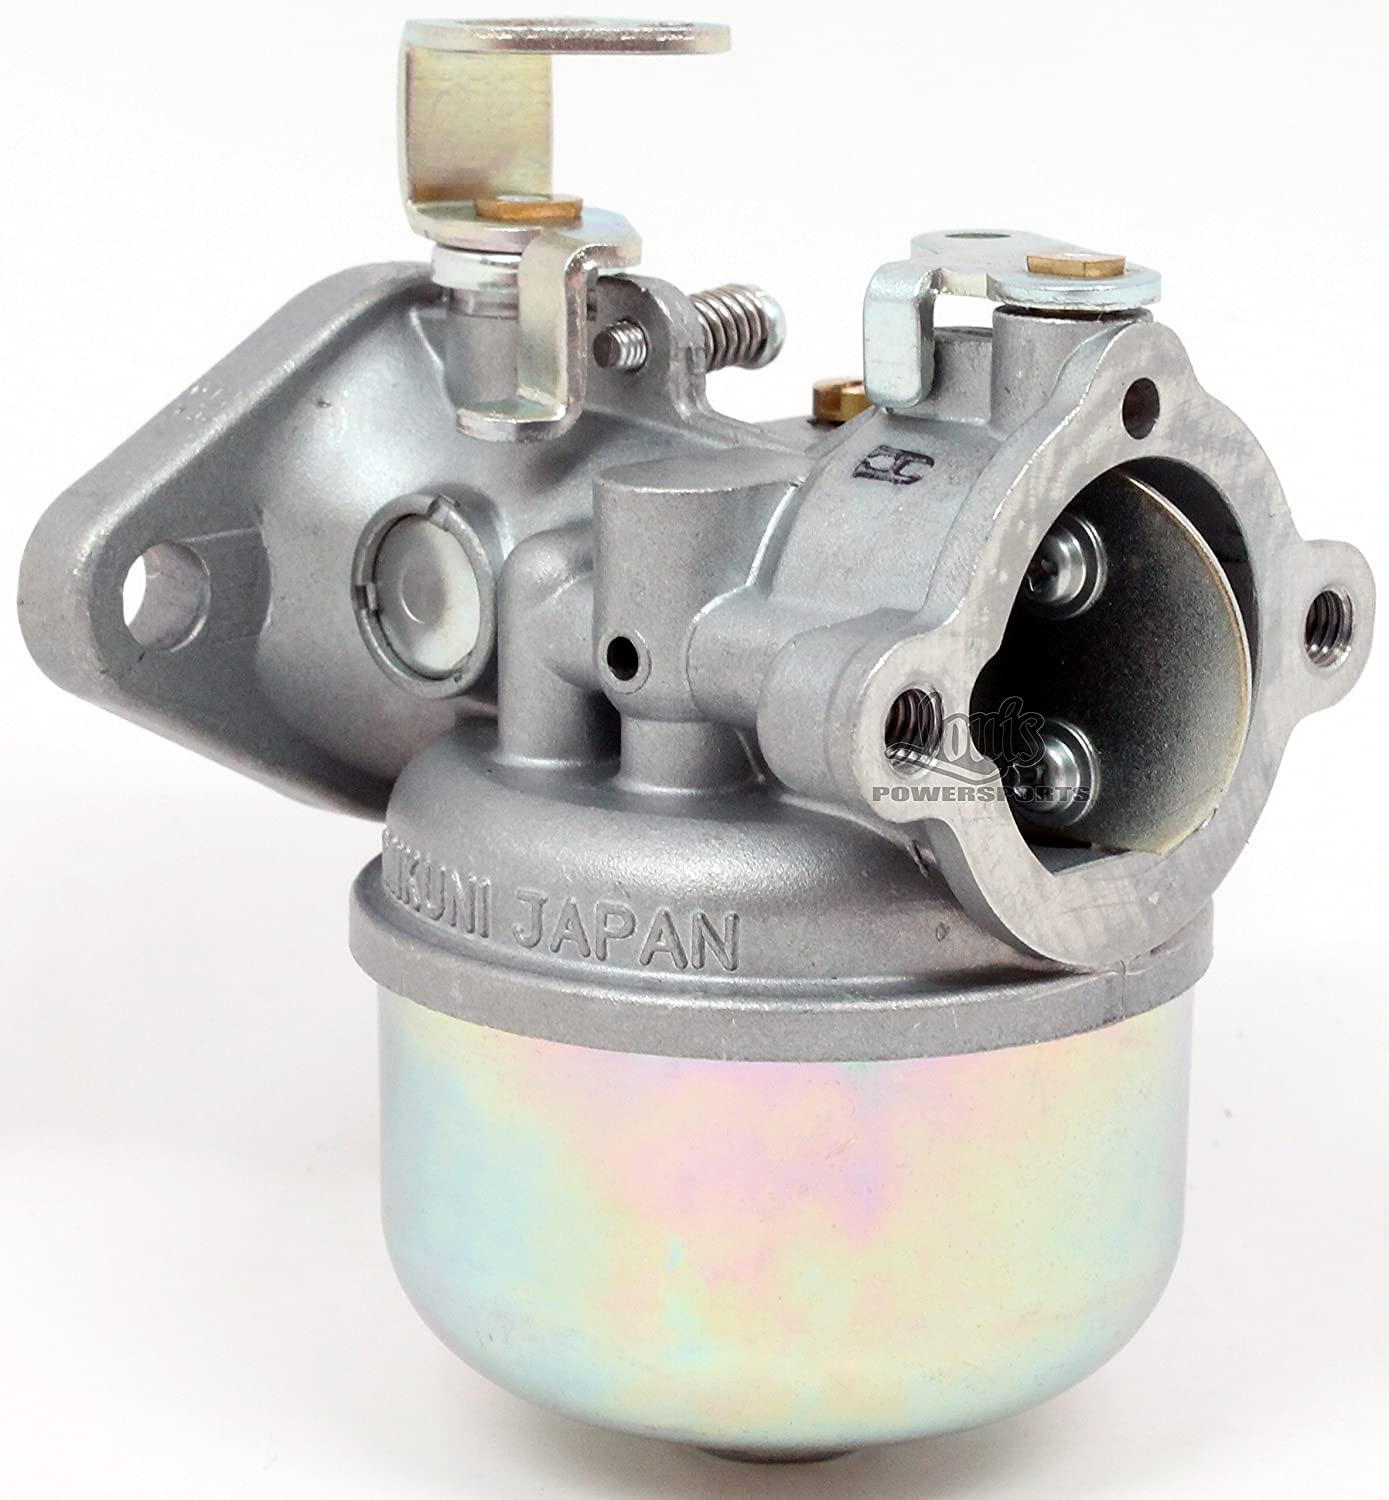 Arctic Cat Kitty Cat Carburetor Carb 3004-036 New OEM AC Snow Kat new wallet кошелек new foxes nw 036